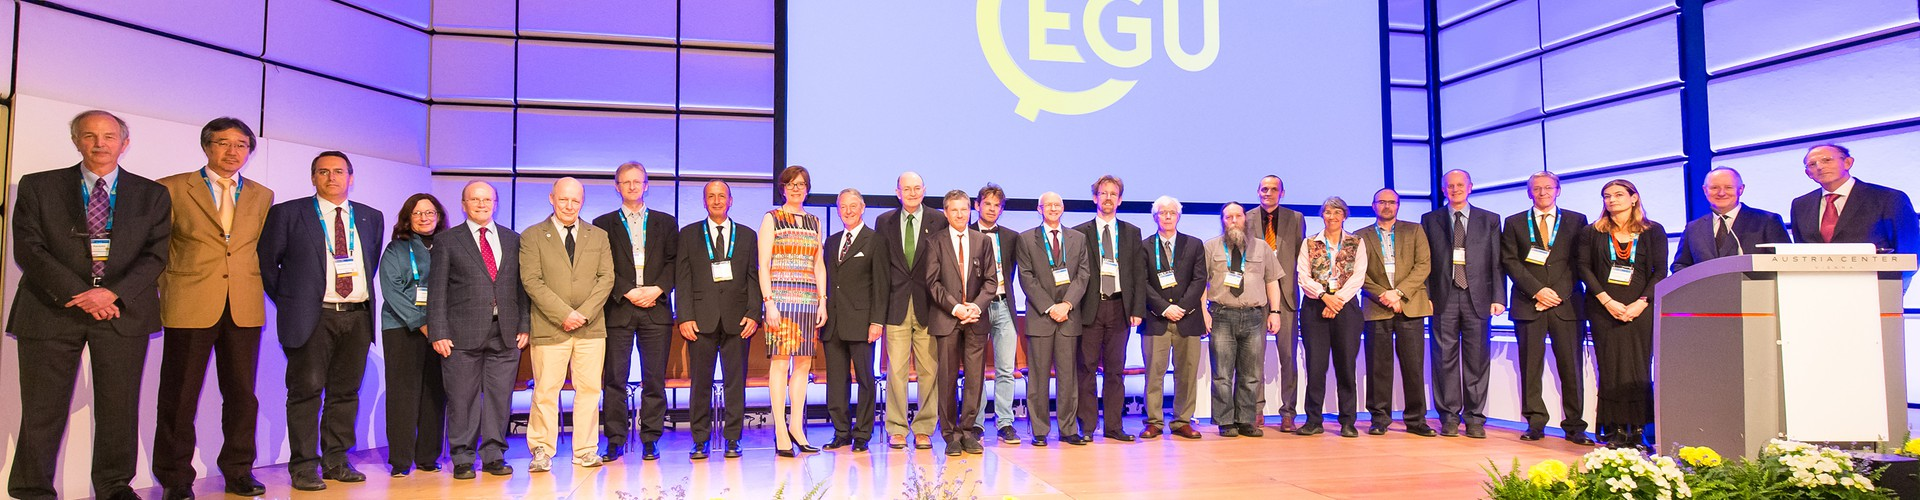 Some of last year's awardees with the EGU President and Vice-President at the EGU 2017 Awards Ceremony (Credit: EGU/Foto Pfluegl)